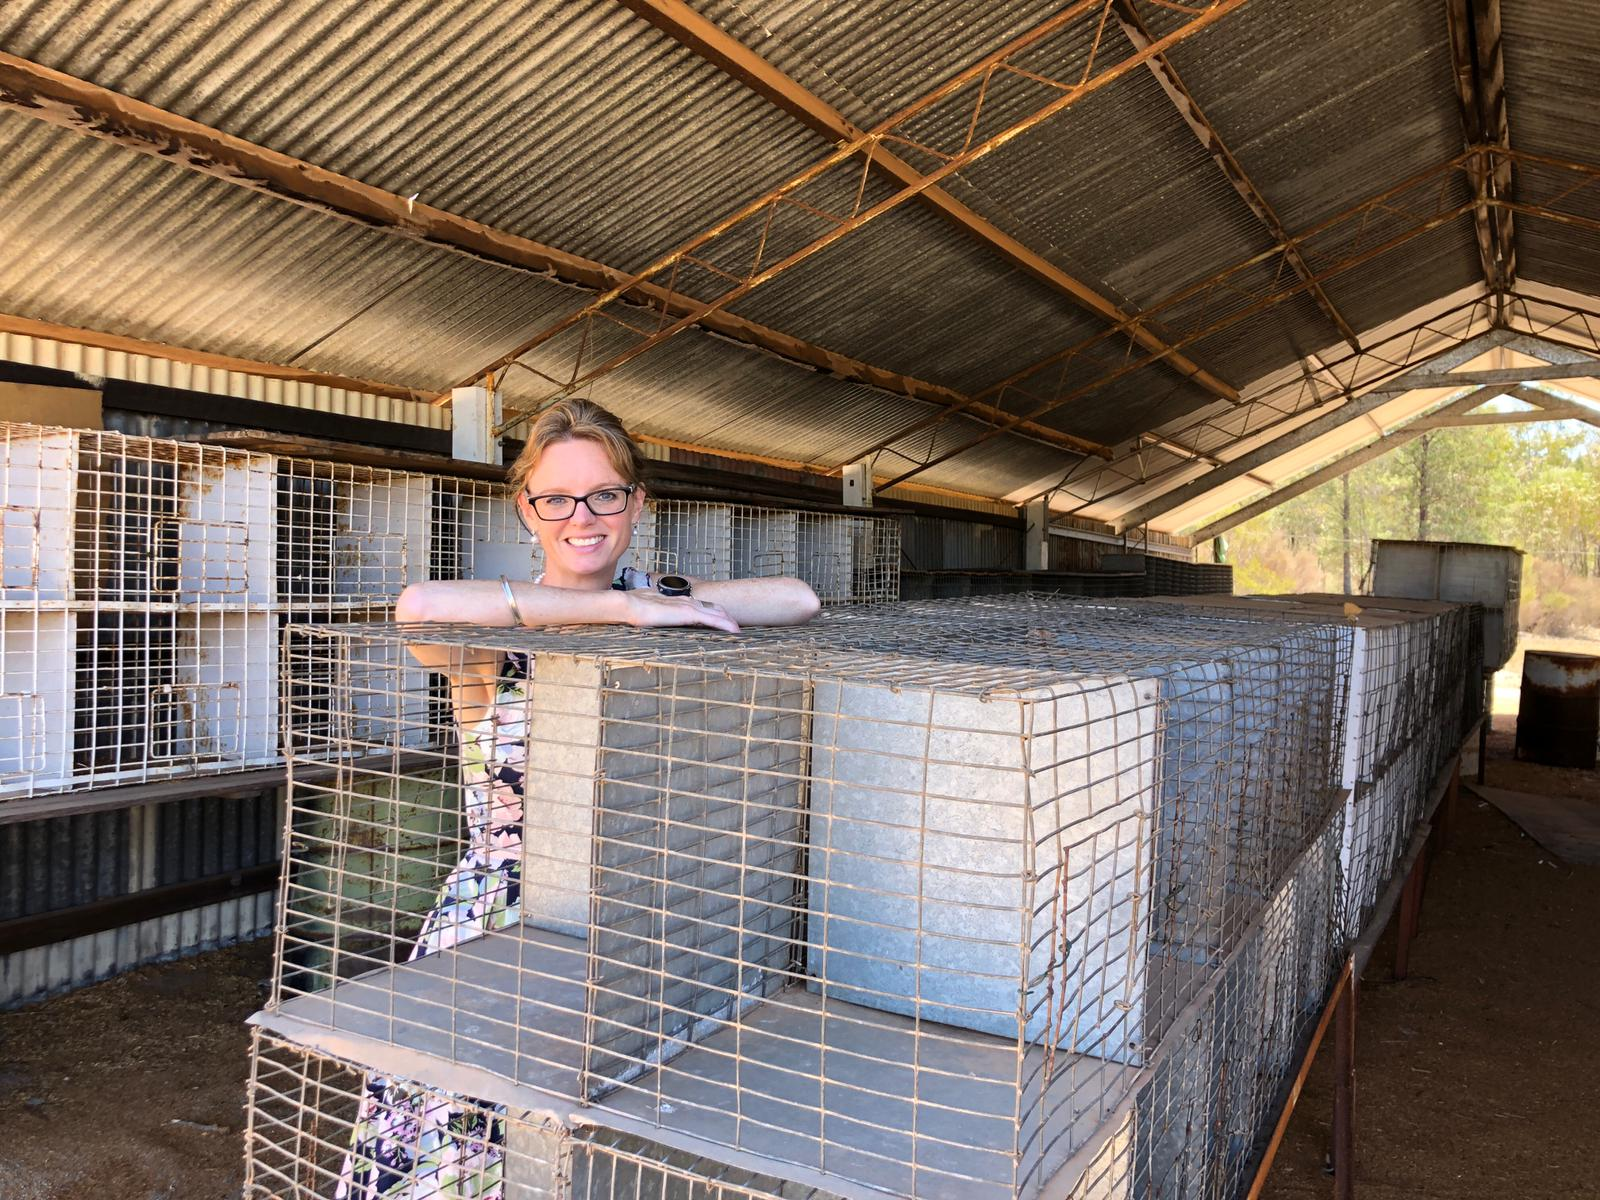 Steph Cooke leans on cages in the Ardlethan Poultry Shed. She smiles at the camera. The metal cages are under a corrugated iron roof.